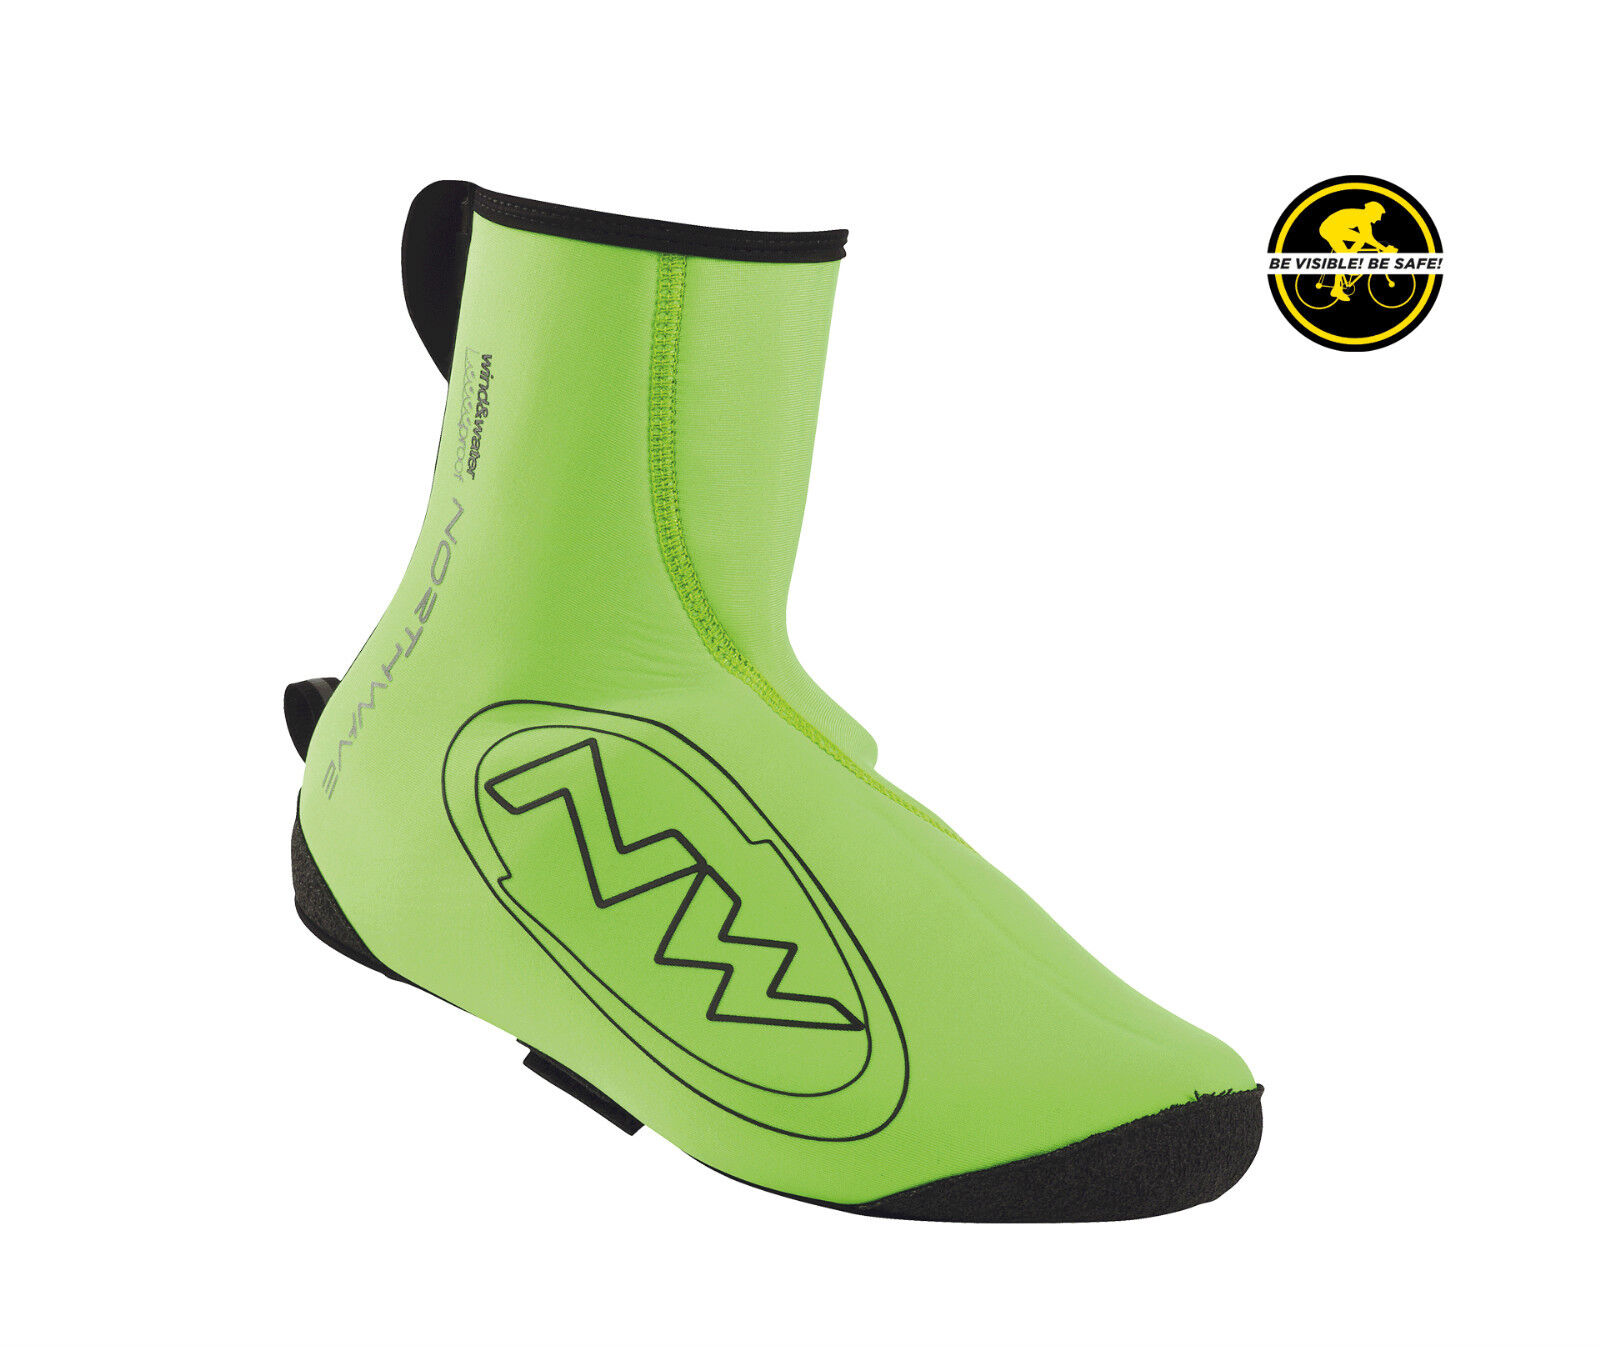 Coprishoes Northwave NEOPRENE Col.Gren Fluo SHOECOVER NORTHWAVE NEOPRENE GREEN